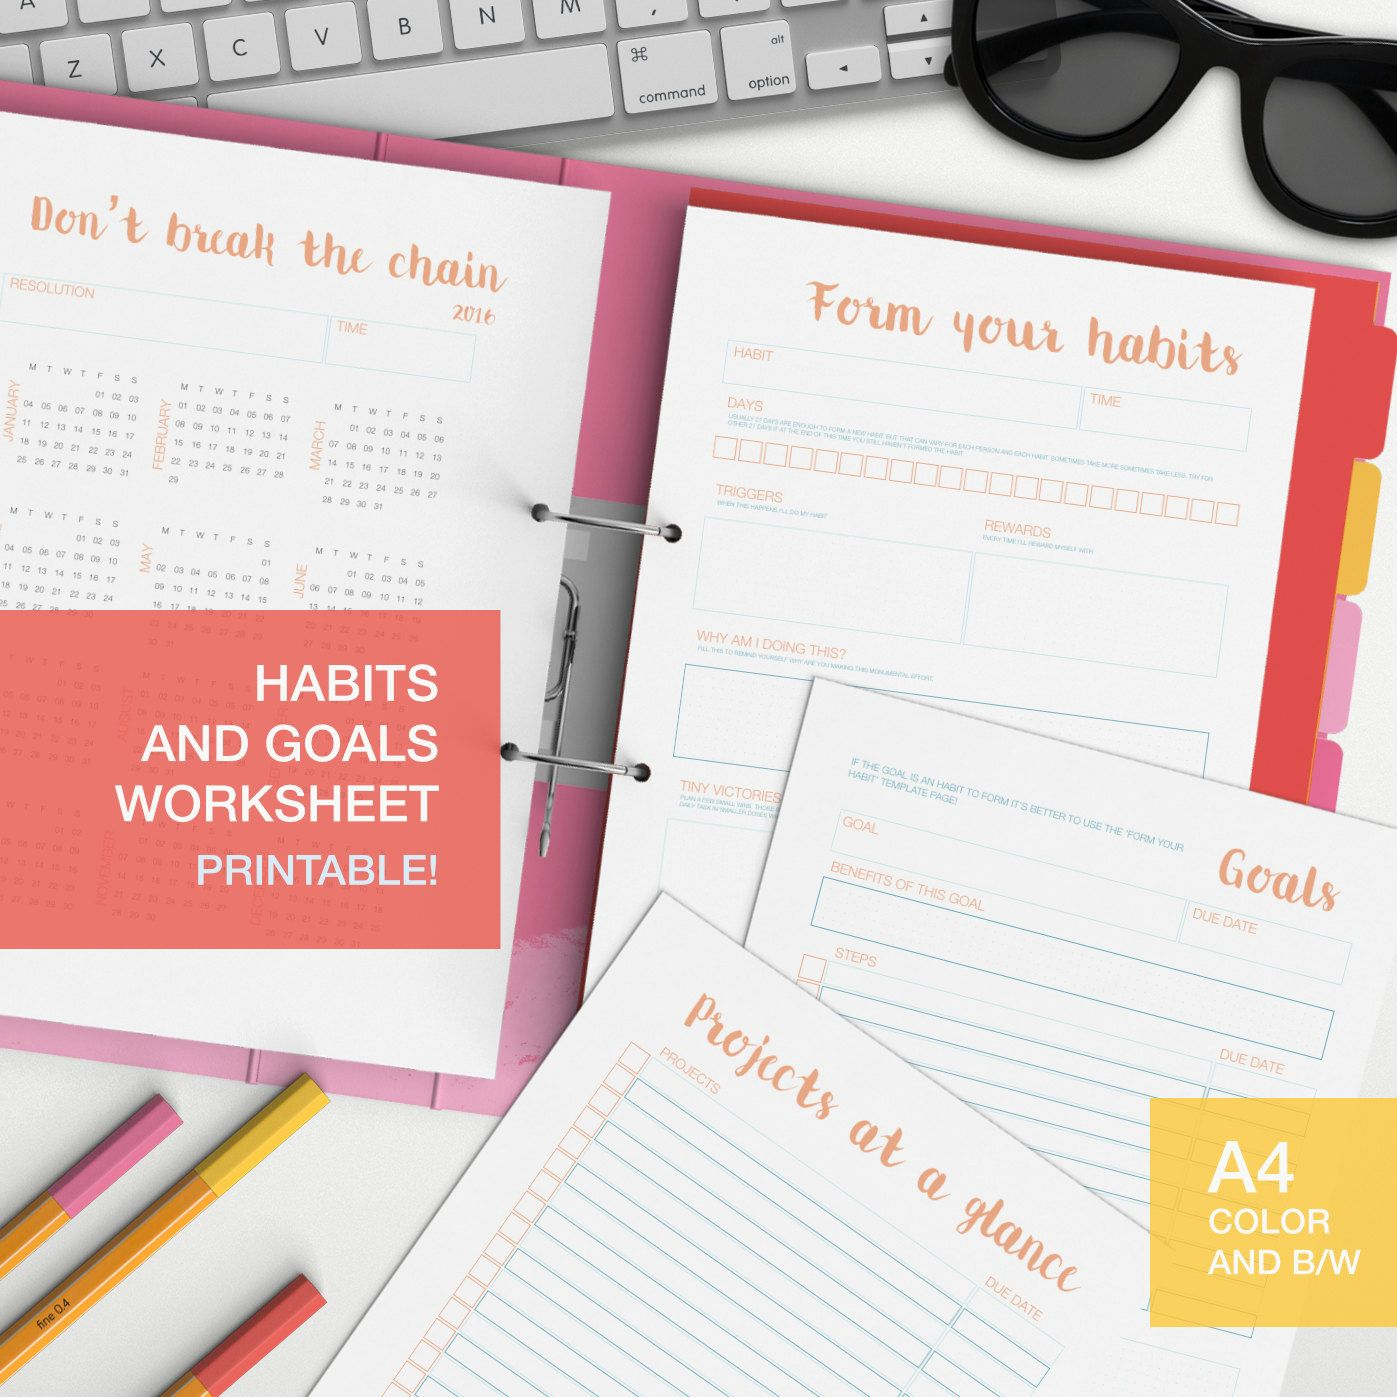 Printable Habits And Goal Worksheets For Your Self Care